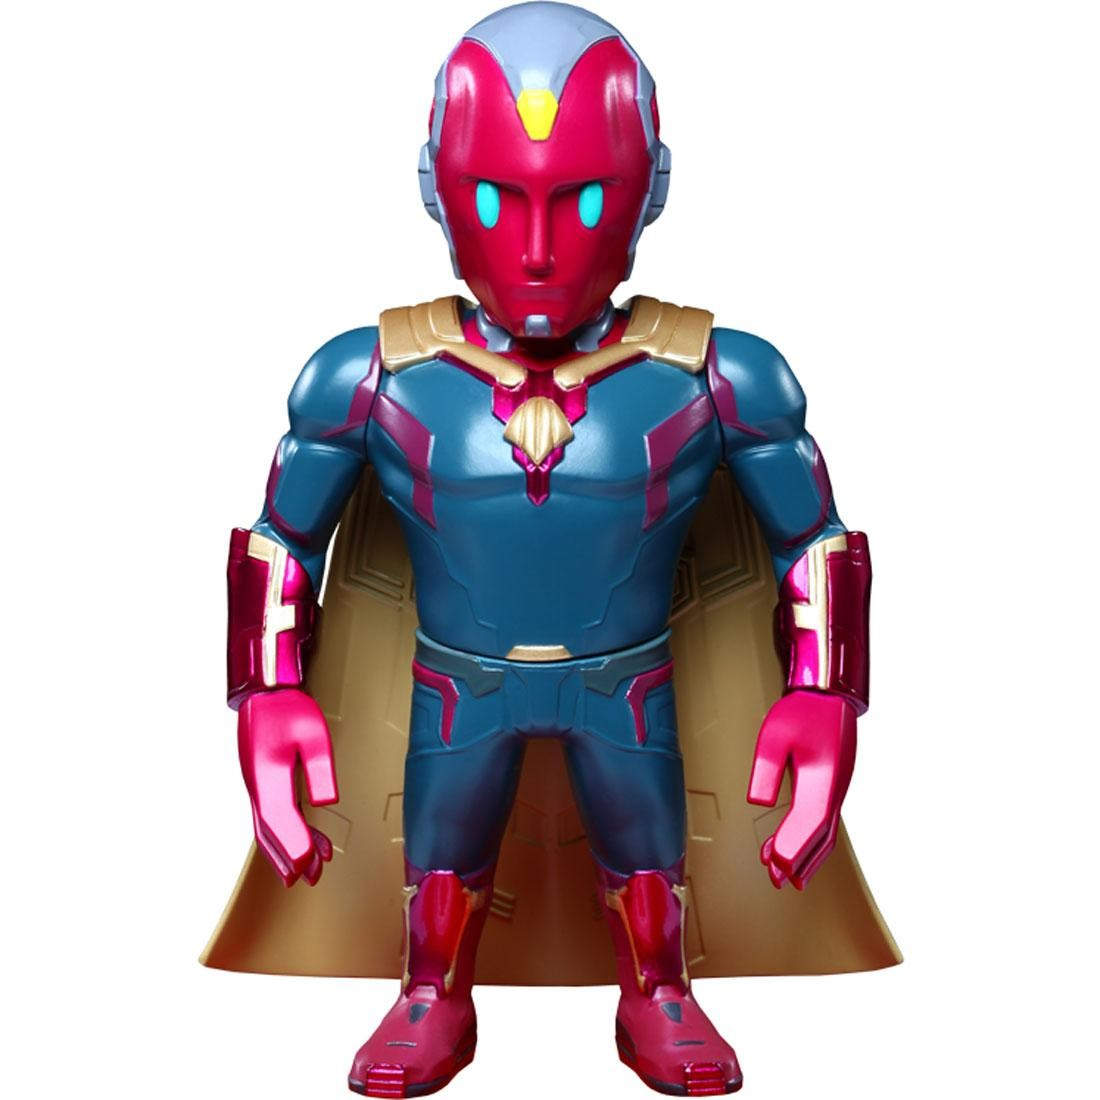 Hot Toys Vision Avengers Age of Ultron Series 2 Artist Mix Collectible Figure (pink / blue)